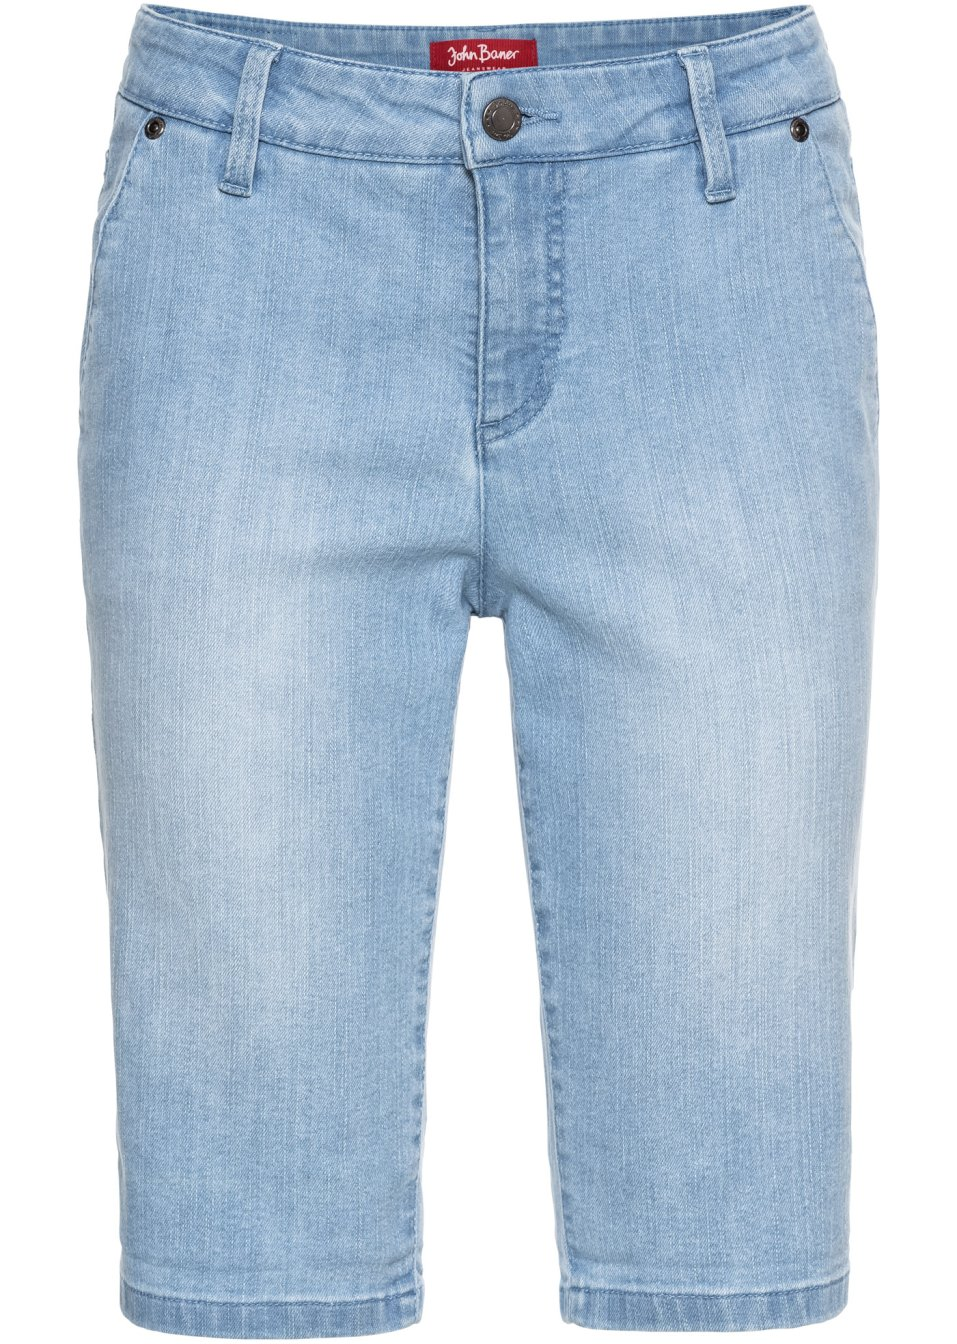 Stretchige Jeans-Bermuda in Basic-Form - hellblau Normal t1kKs UzVNU